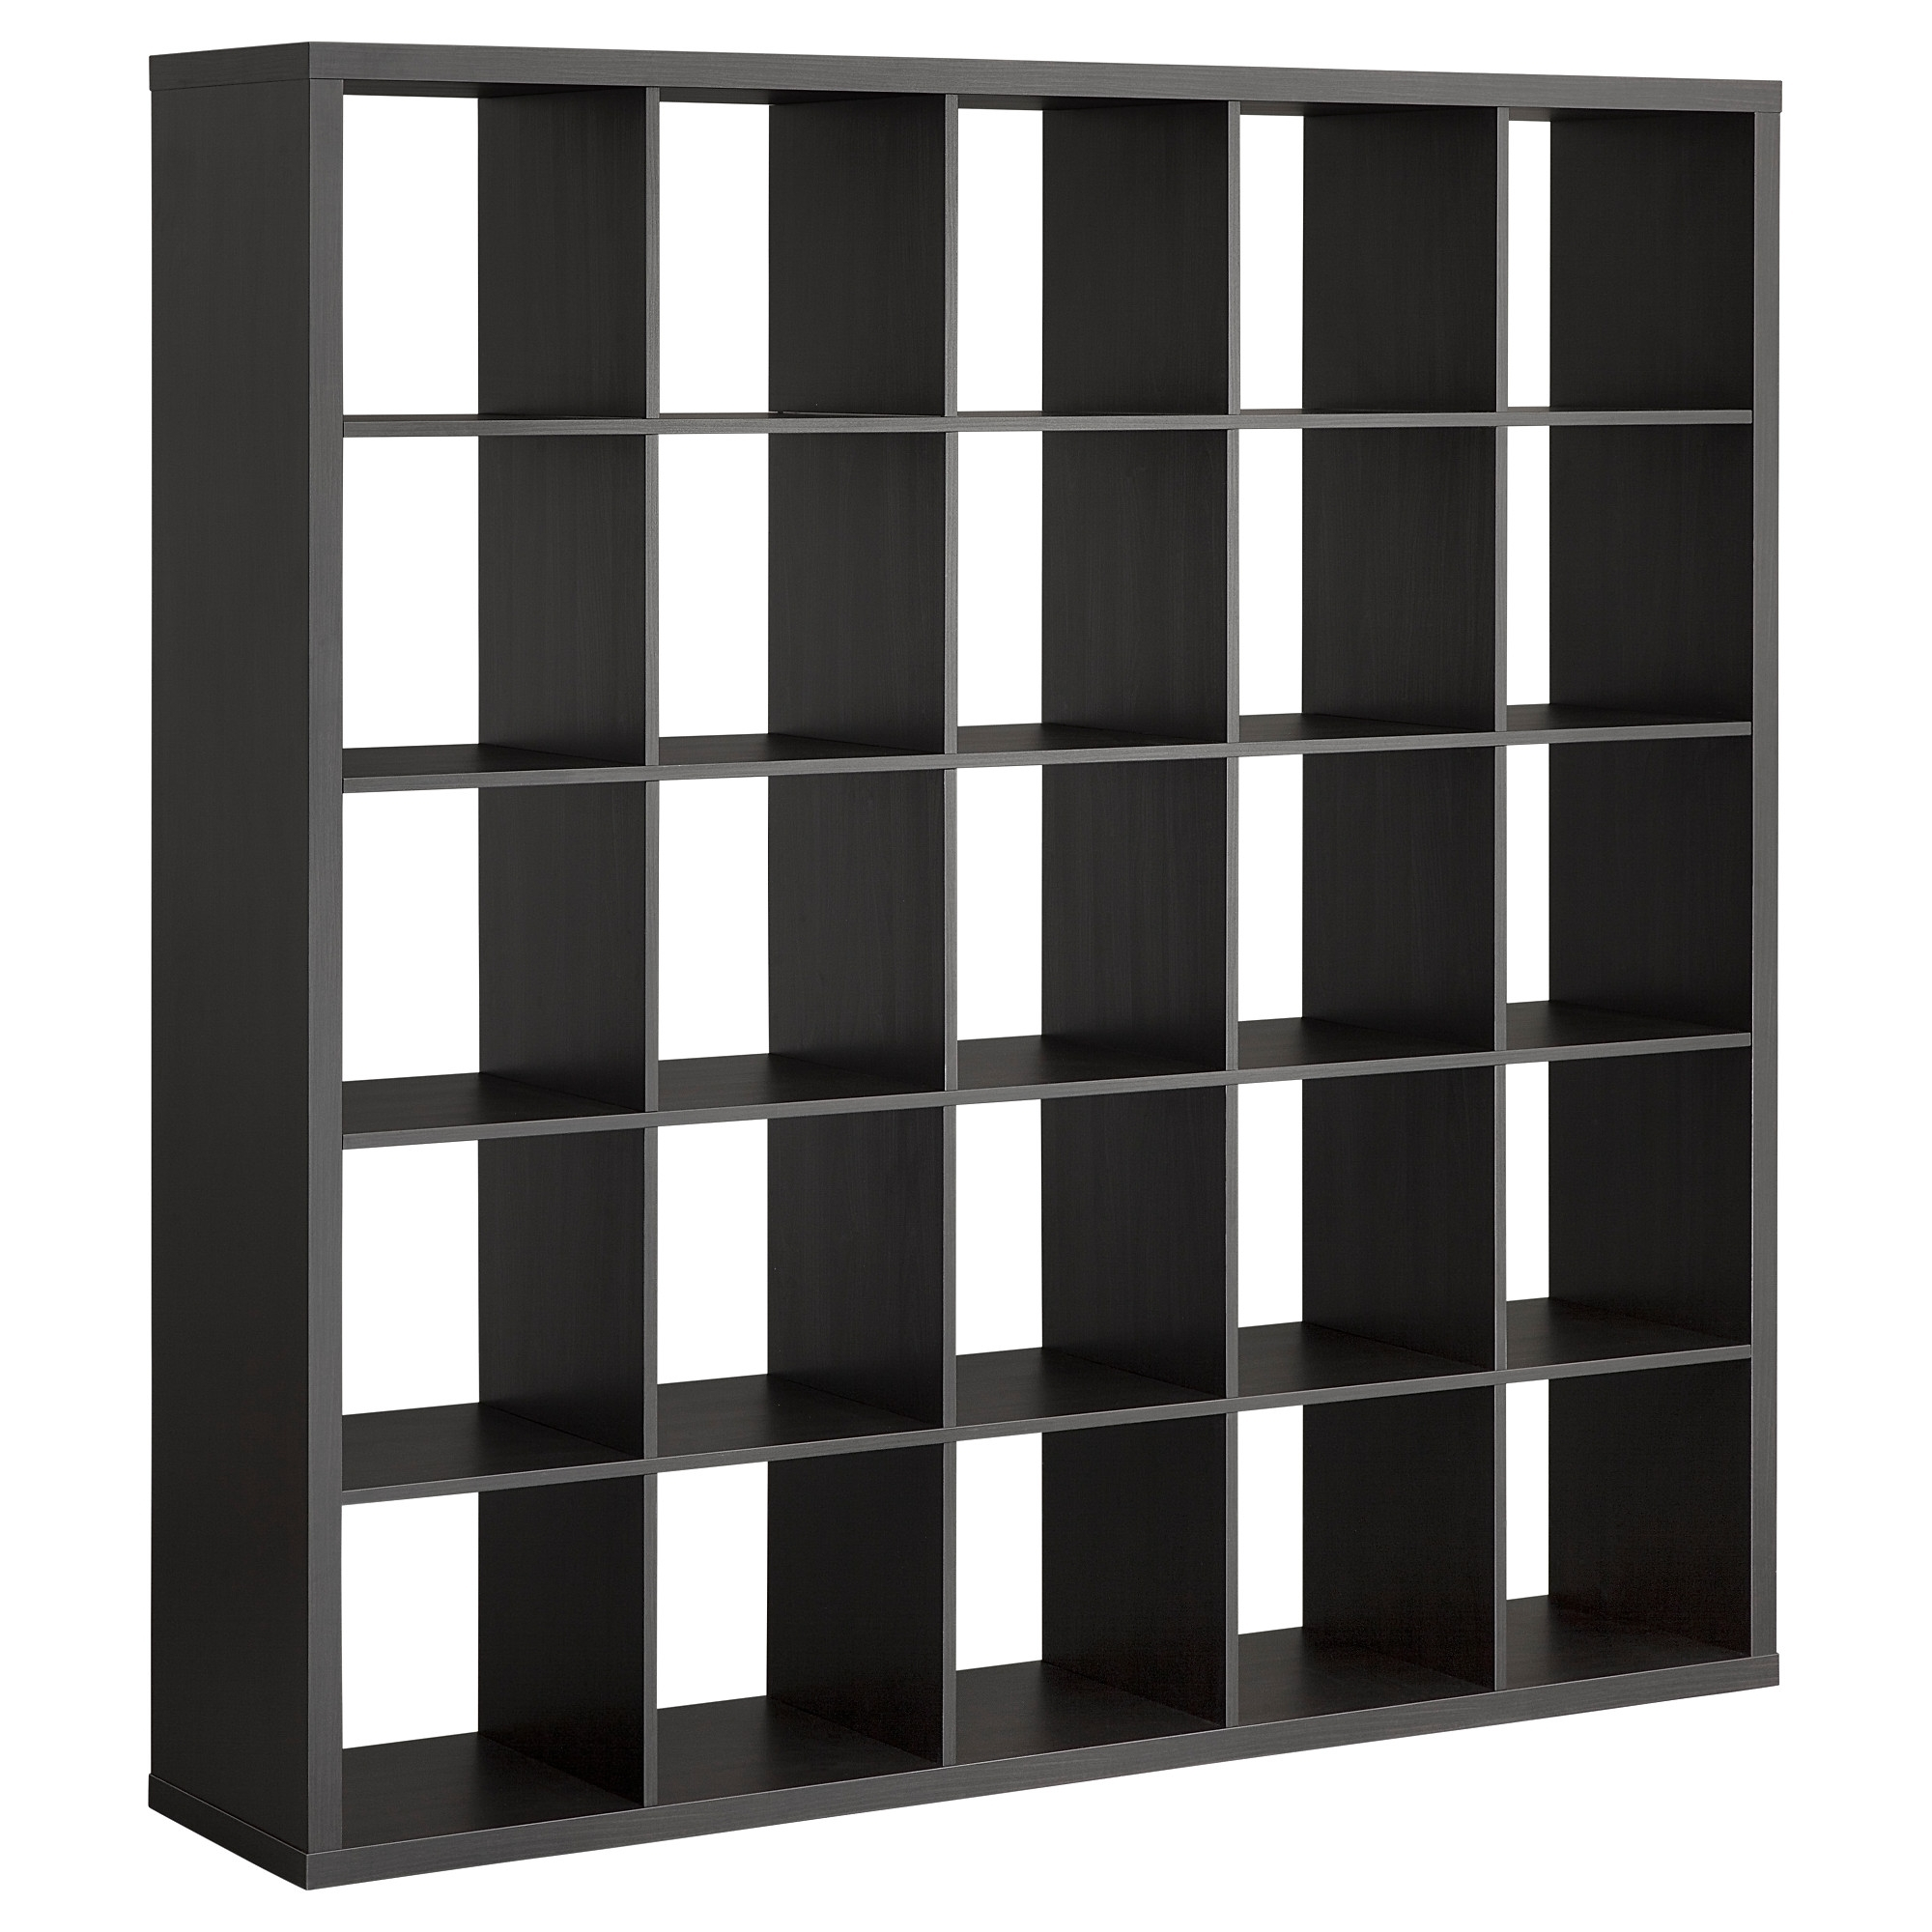 Preferred Ikea Cube Bookcases Intended For Kallax Shelf Unit – White – Ikea (View 2 of 15)